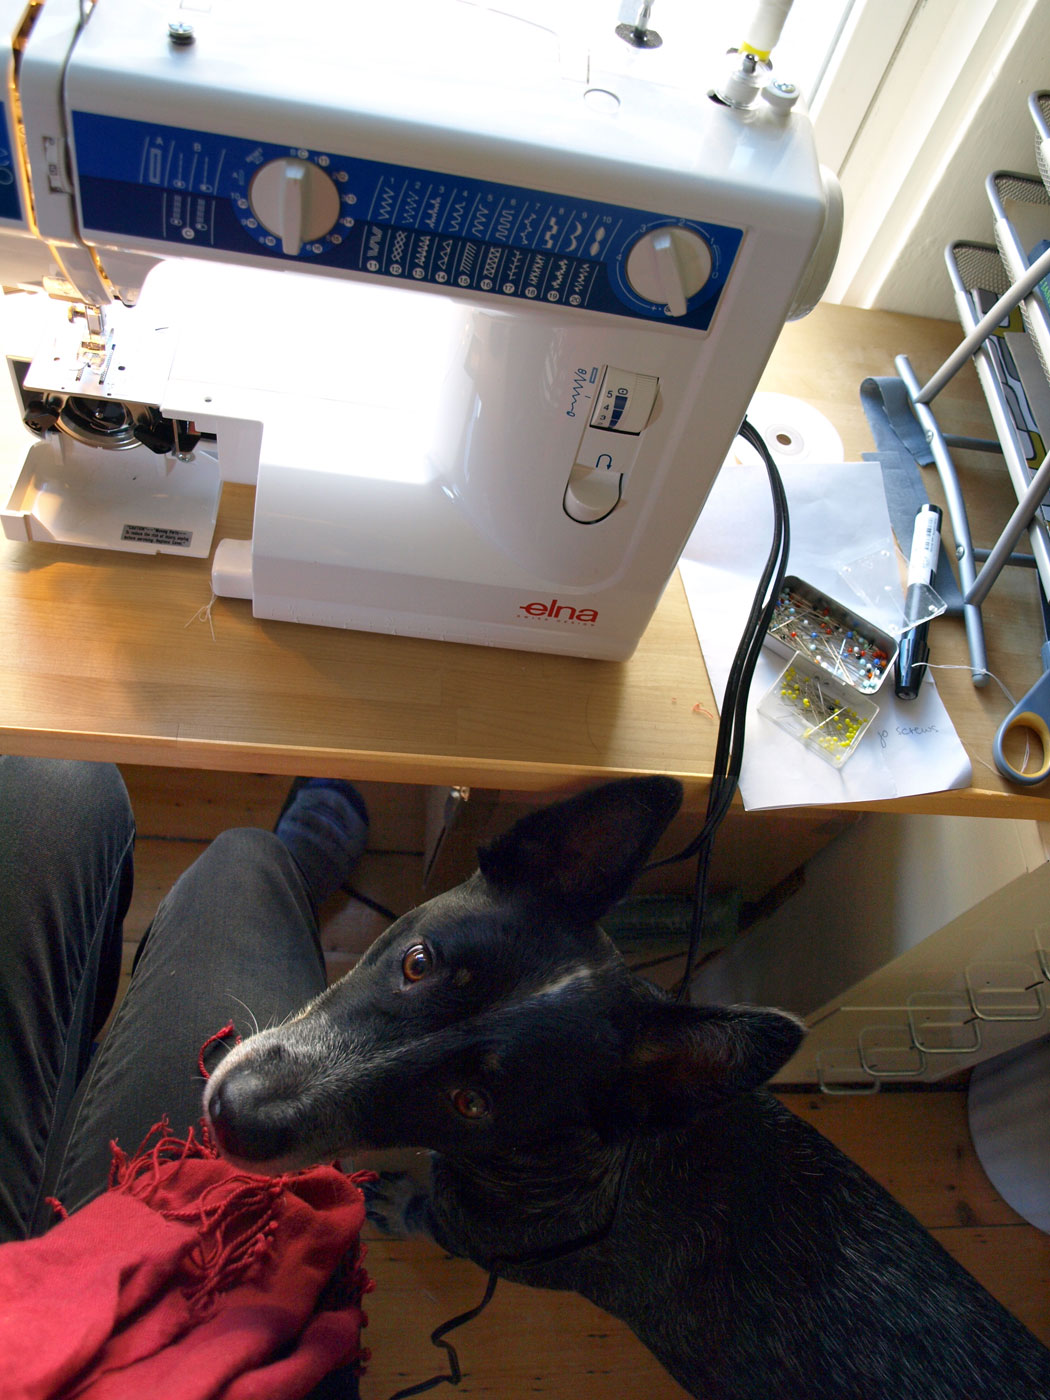 In the studio with Radio, this dog has the curiosity of a cat: Watching me wind bobbins for a day of sewing.